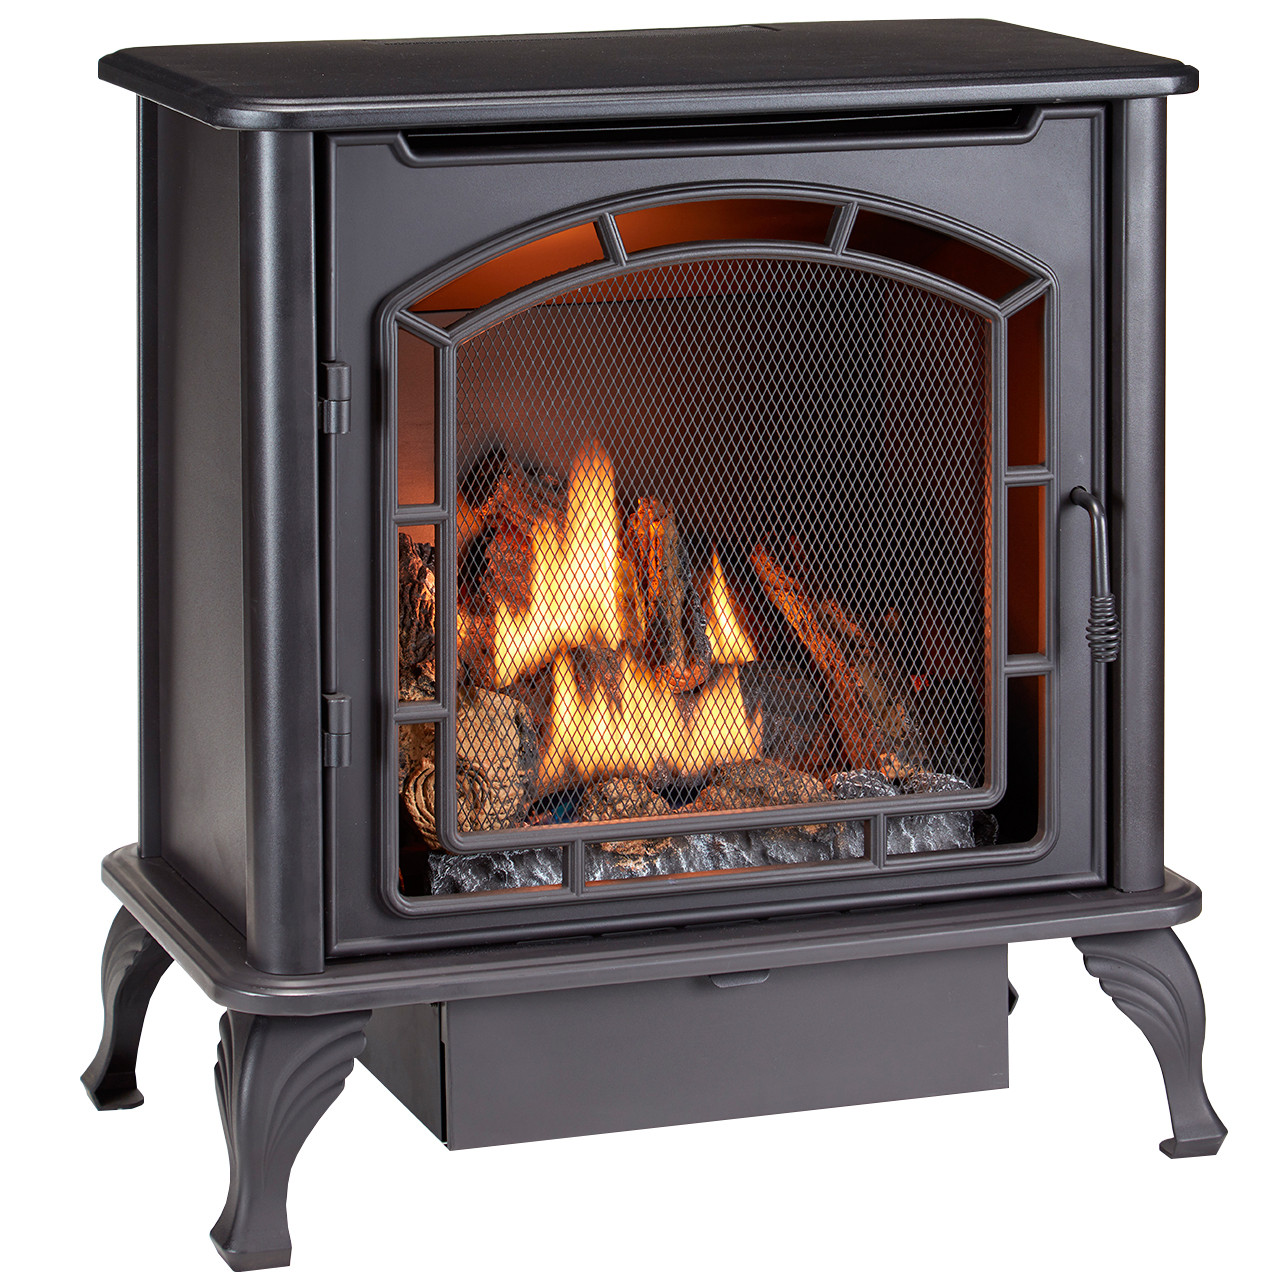 Duluth Forge Dual Fuel Ventless Gas Stove - Model DF25SMS, TSTAT - Factory Buys Direct